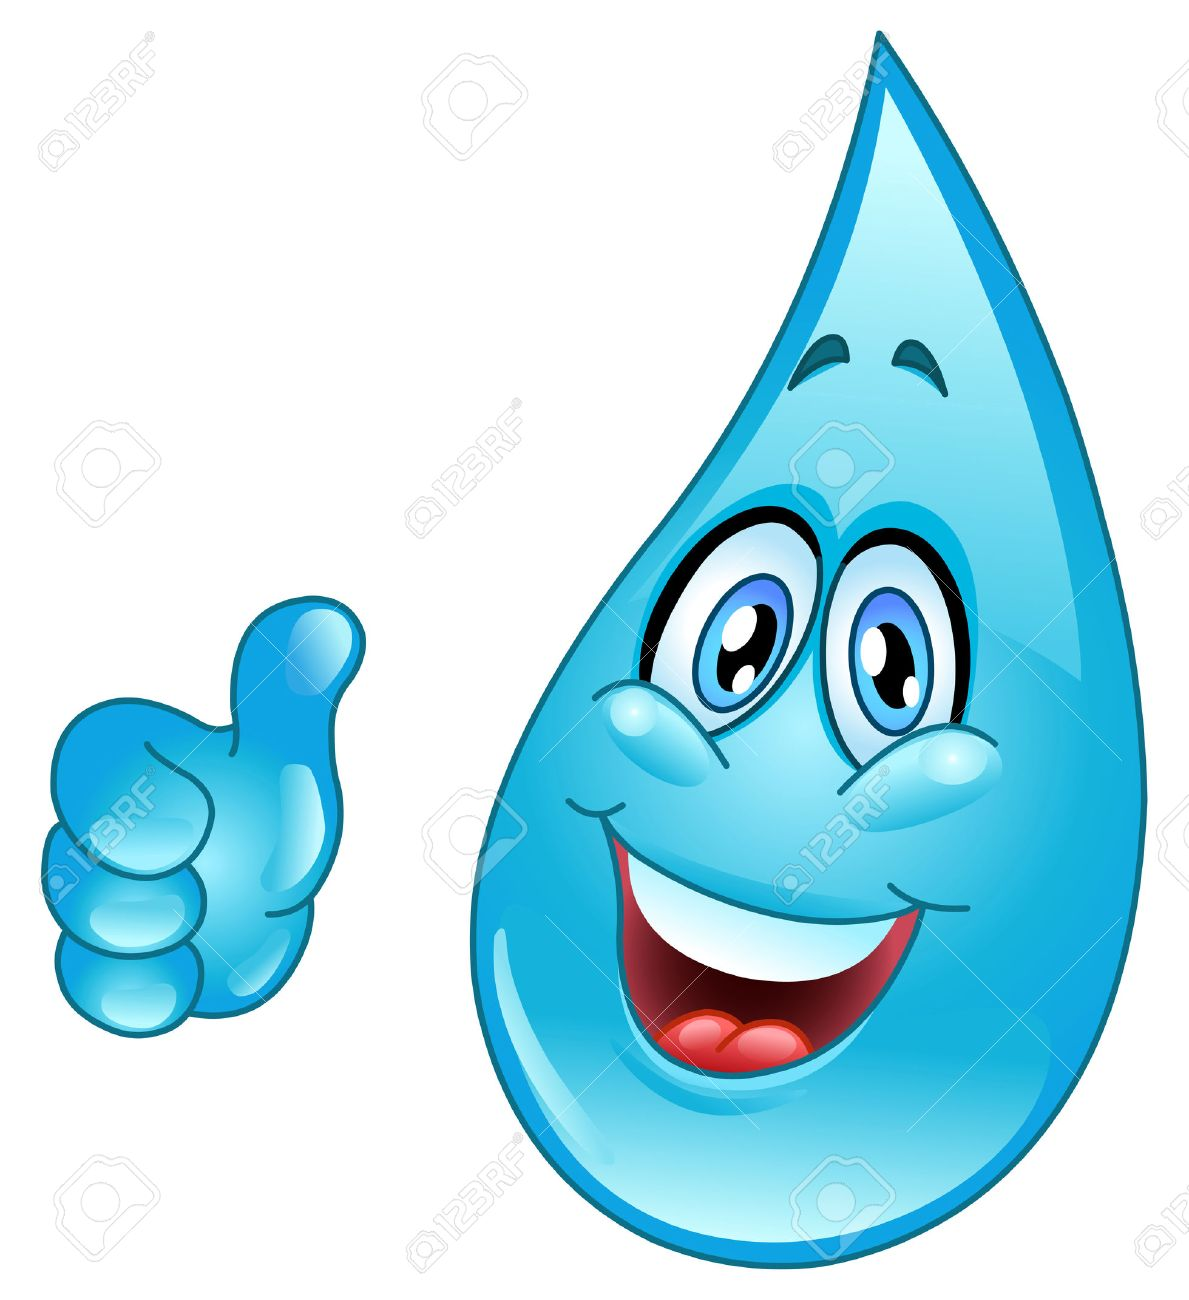 Water droplet with face clipart - ClipartFest